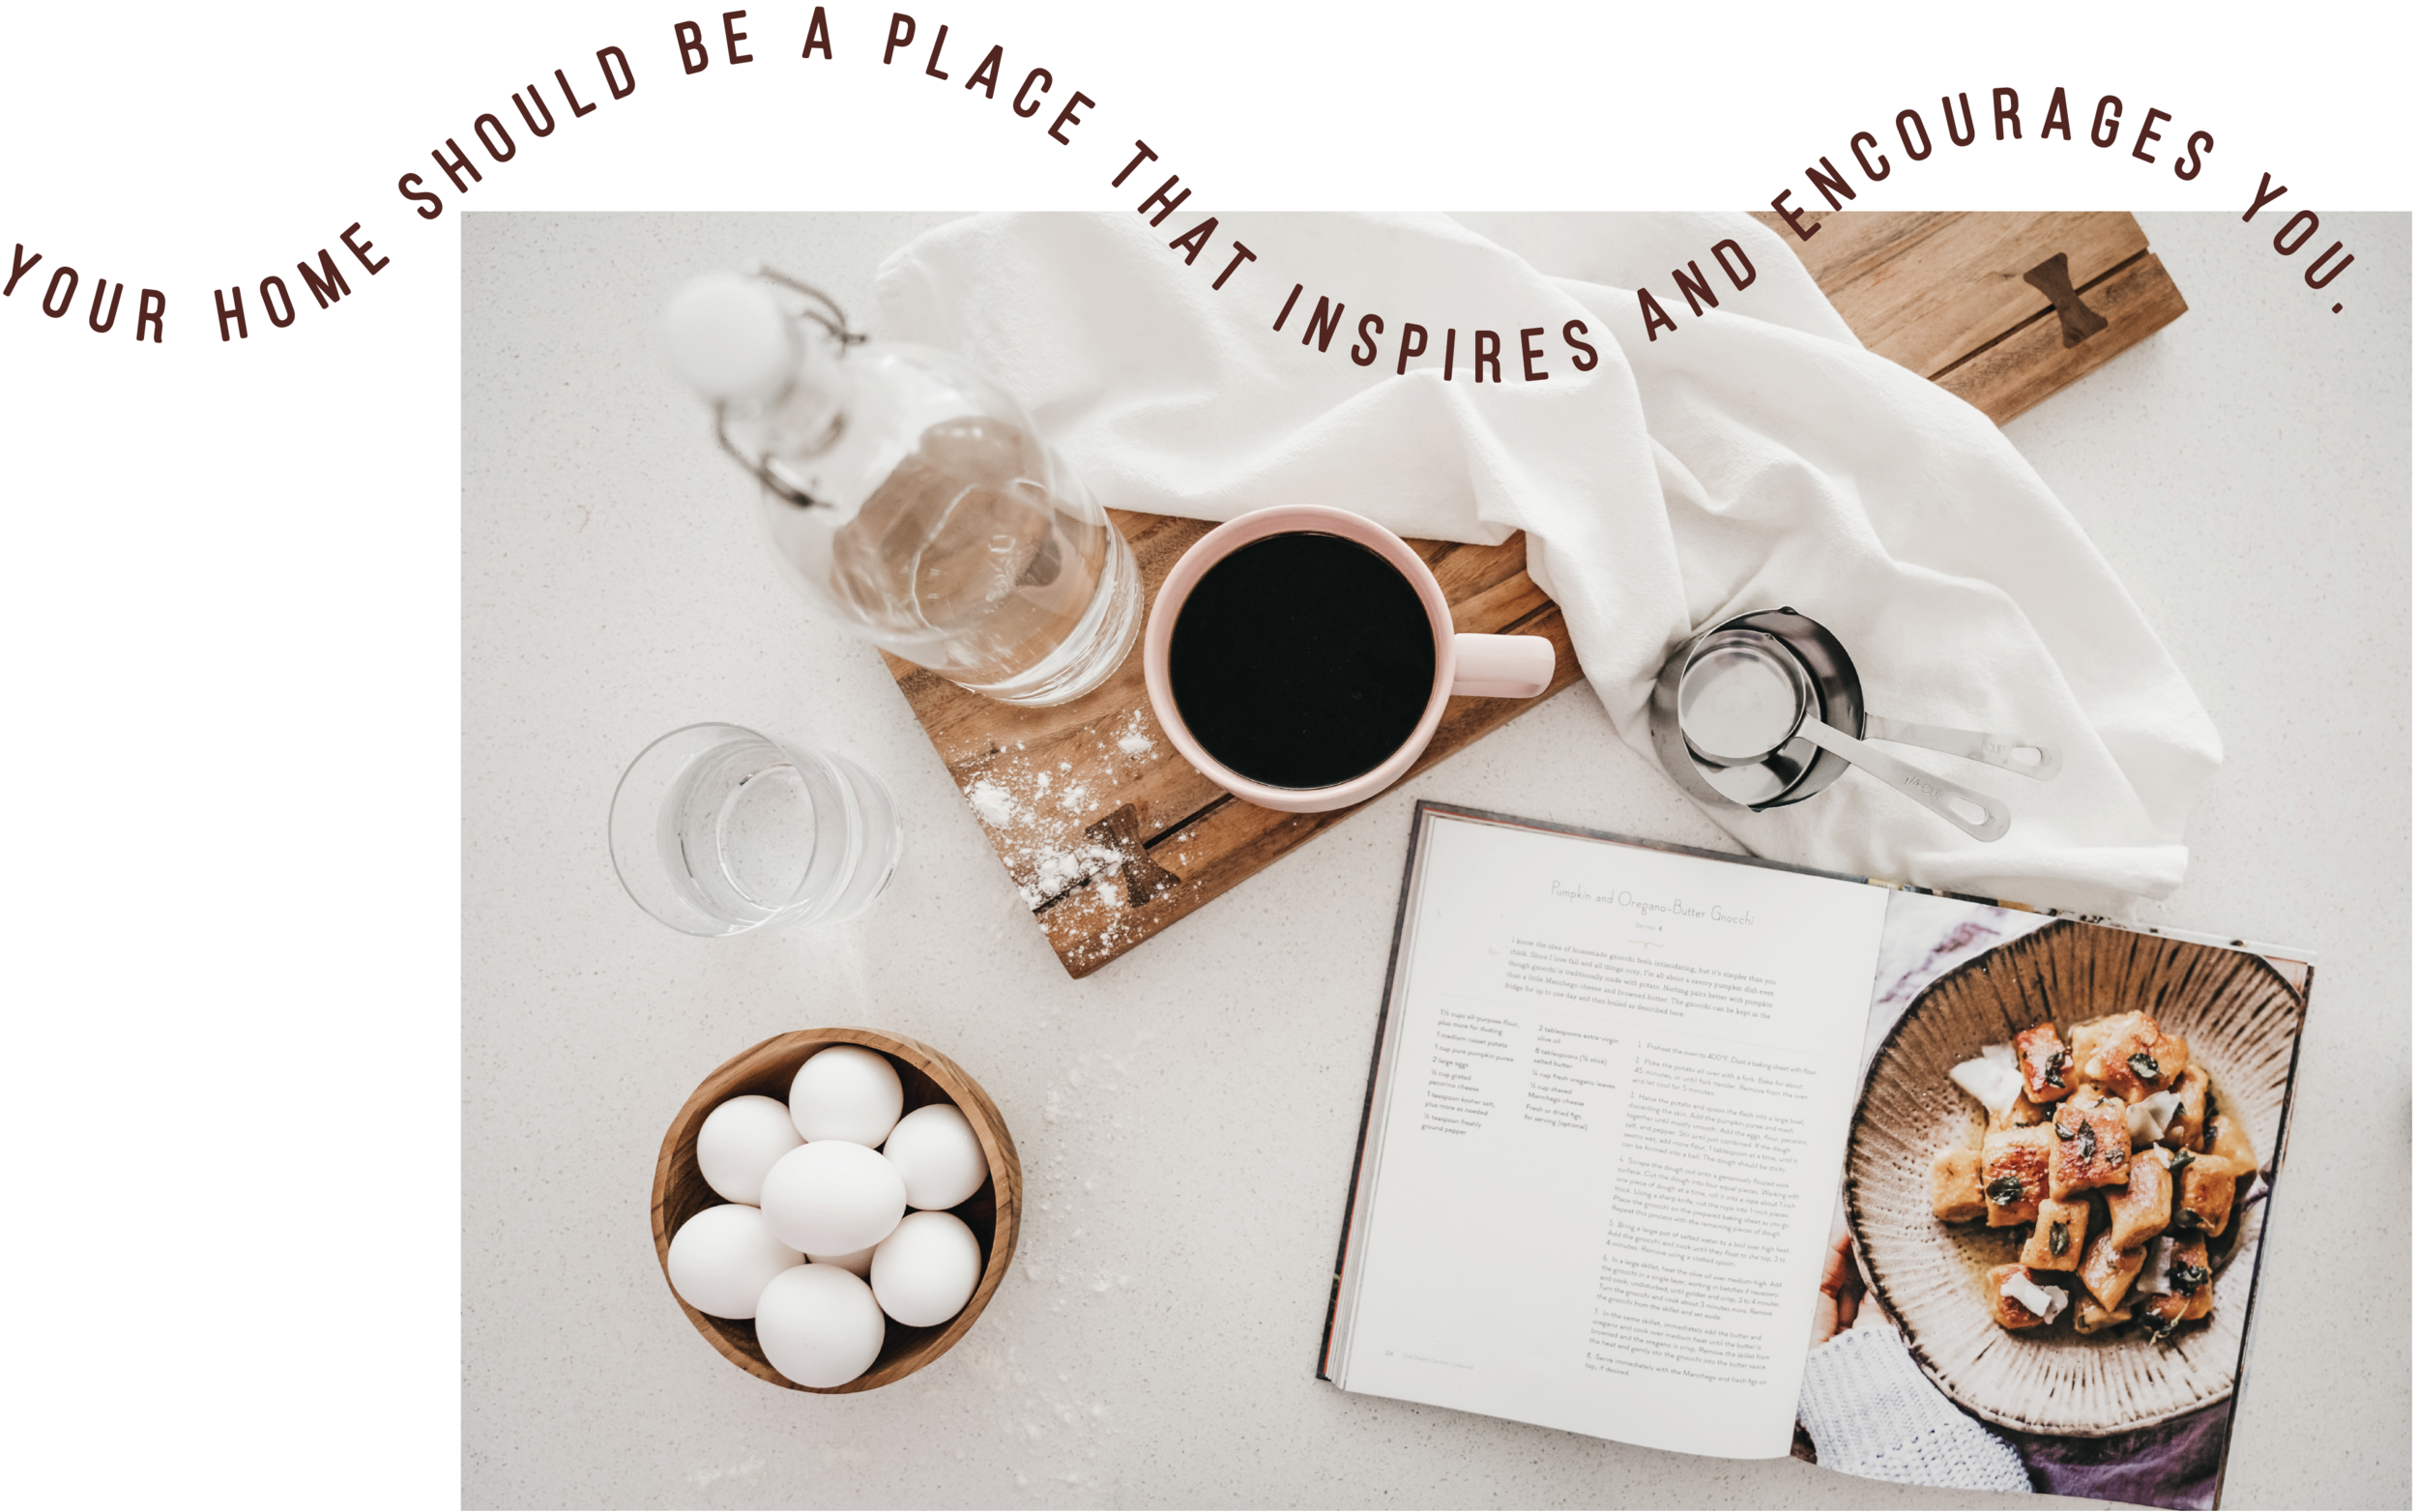 mh inspire quote website-01.png